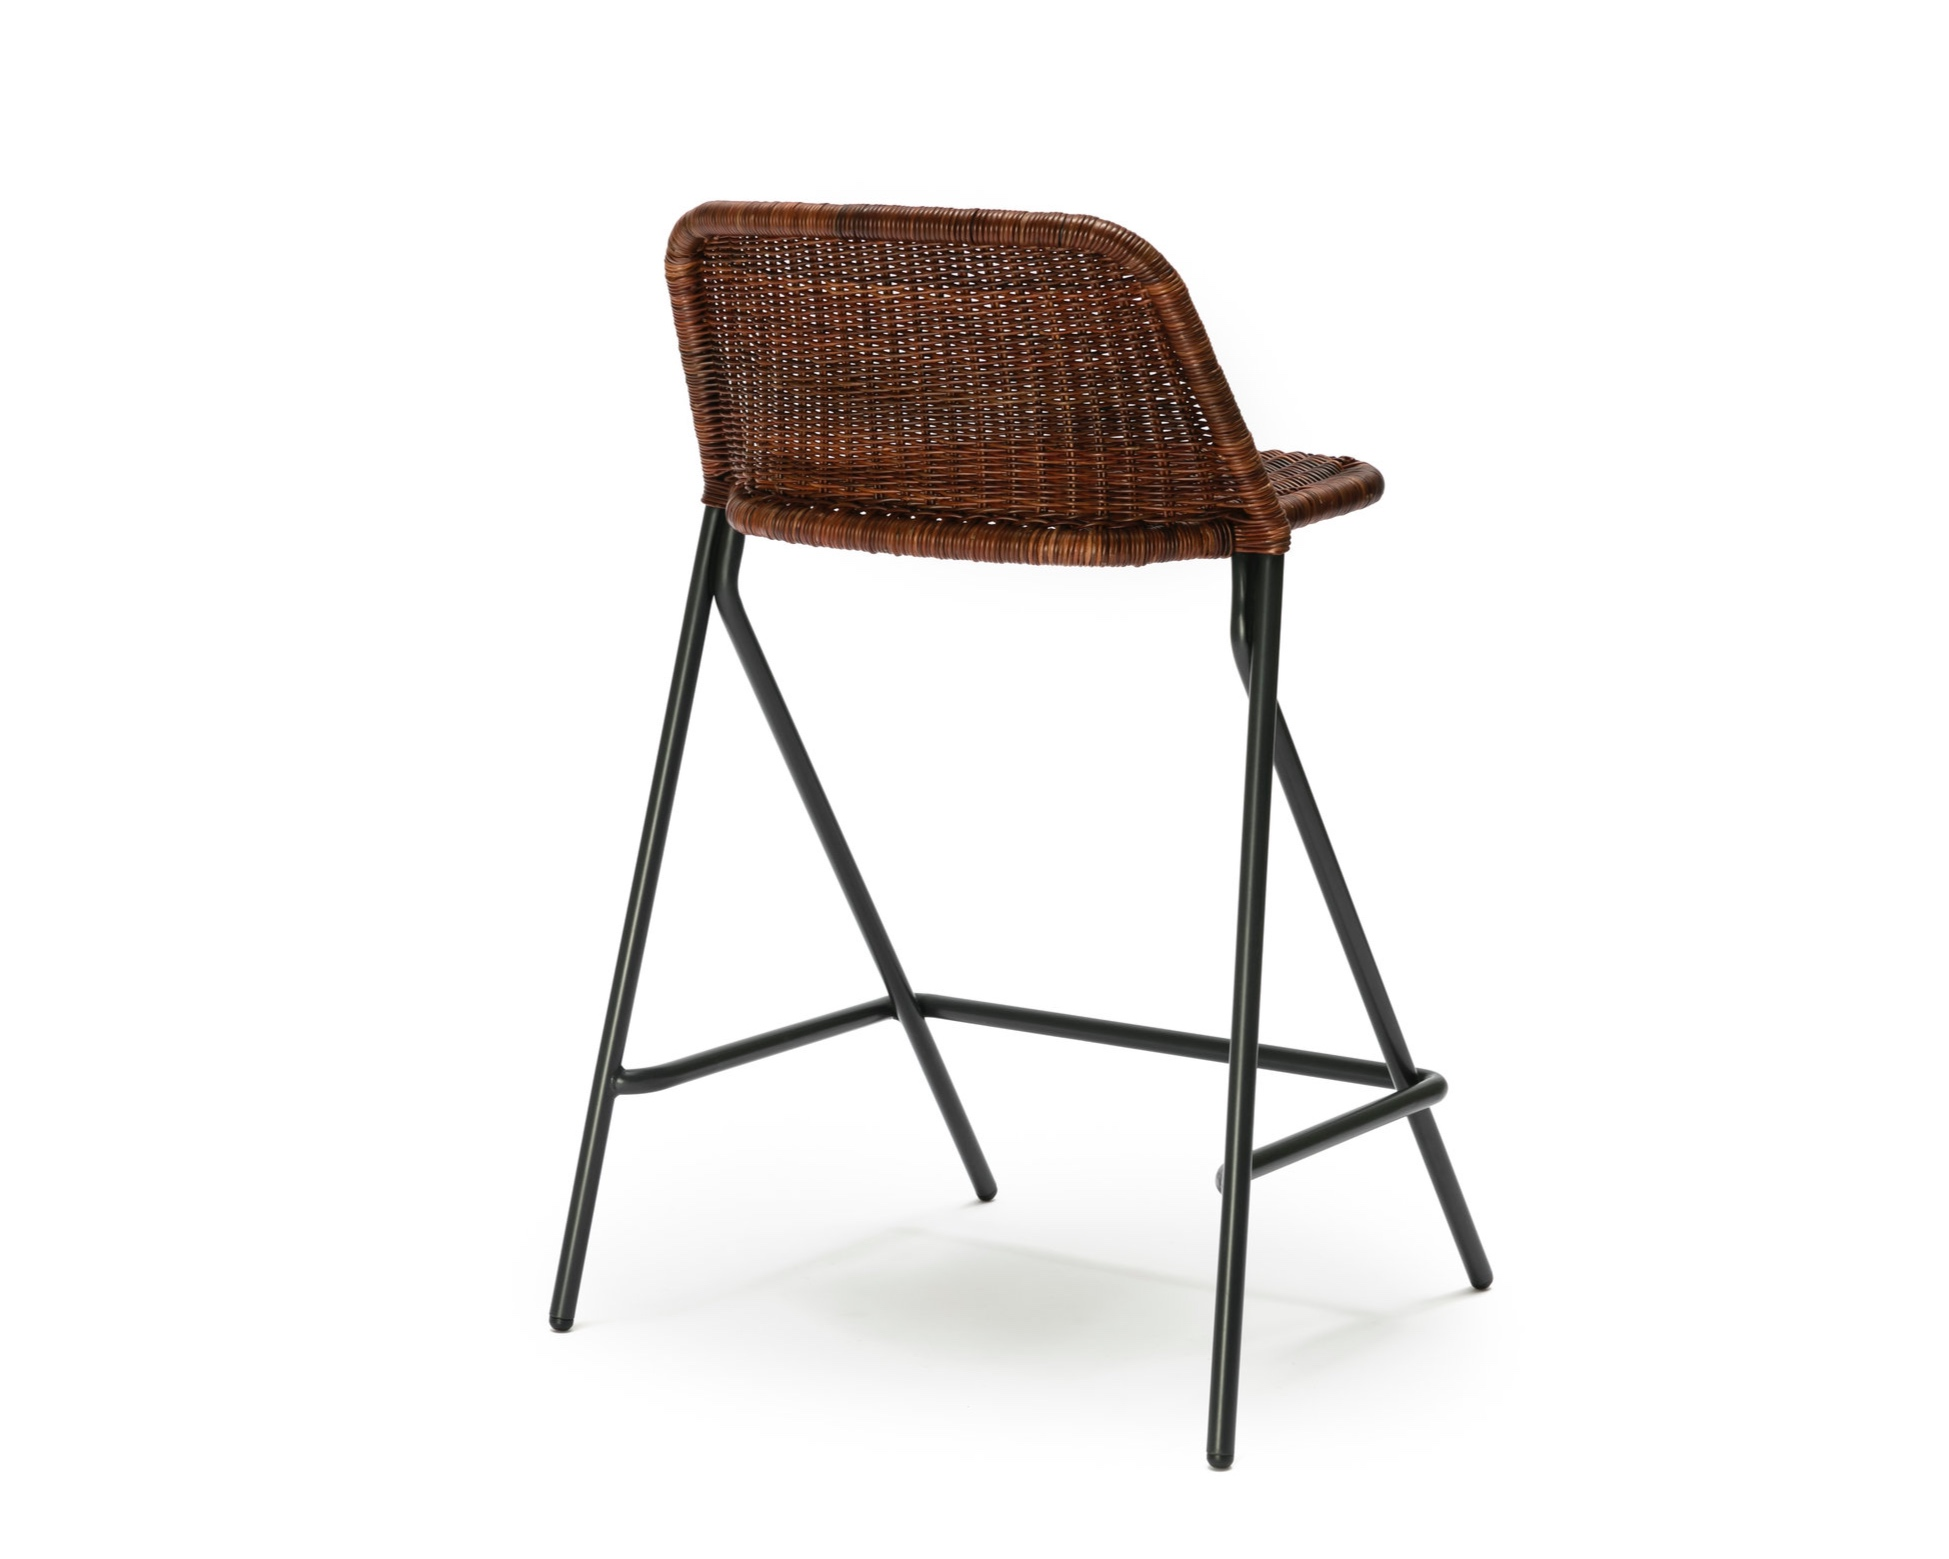 The Kakī Stool